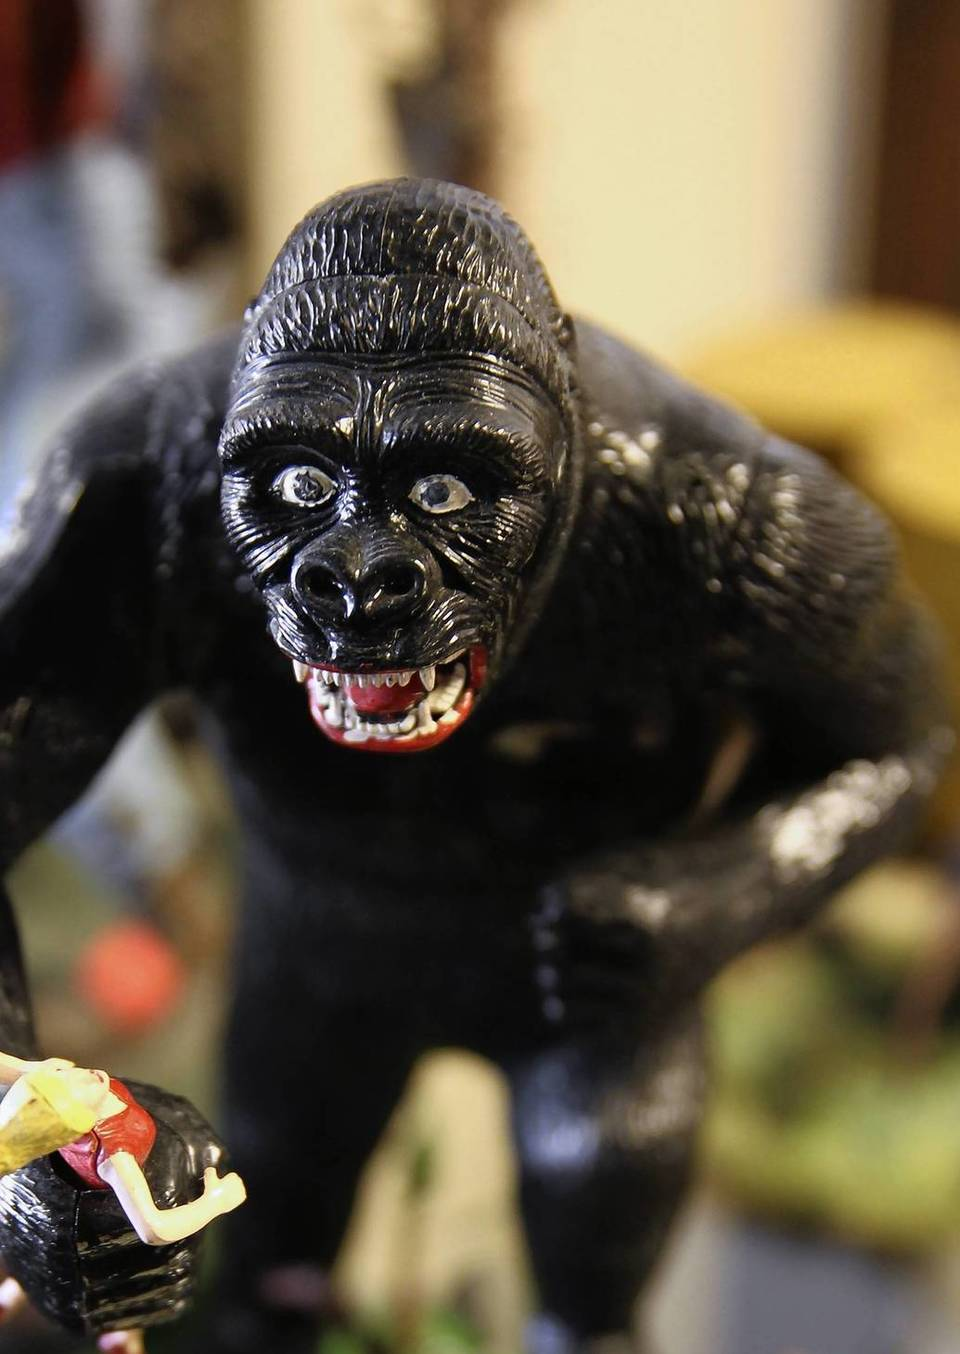 A King Kong figure is seen at Horrorbles, a horror shop in Berwyn.